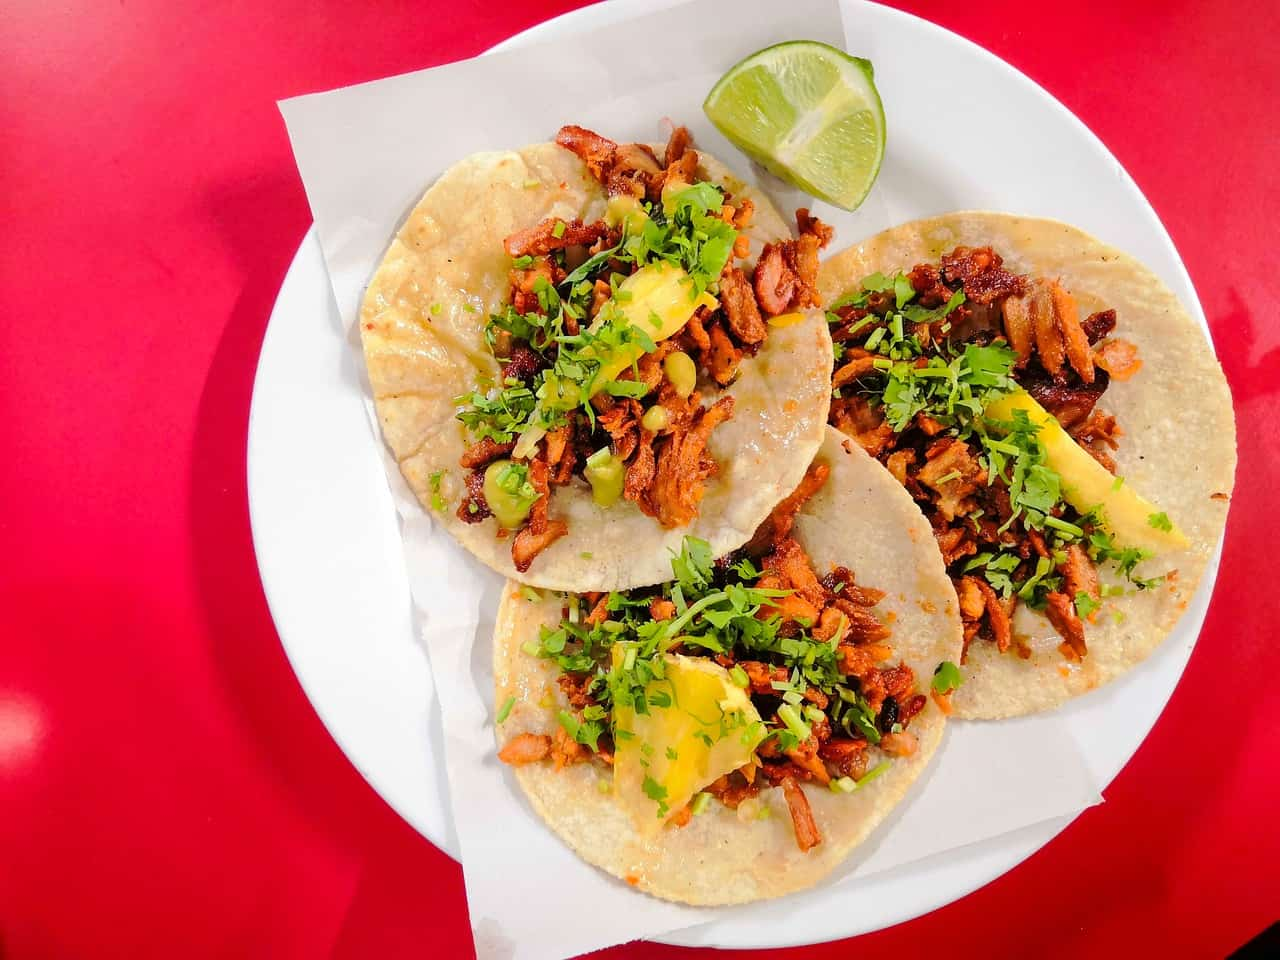 3 tacos al pastor on a red plate